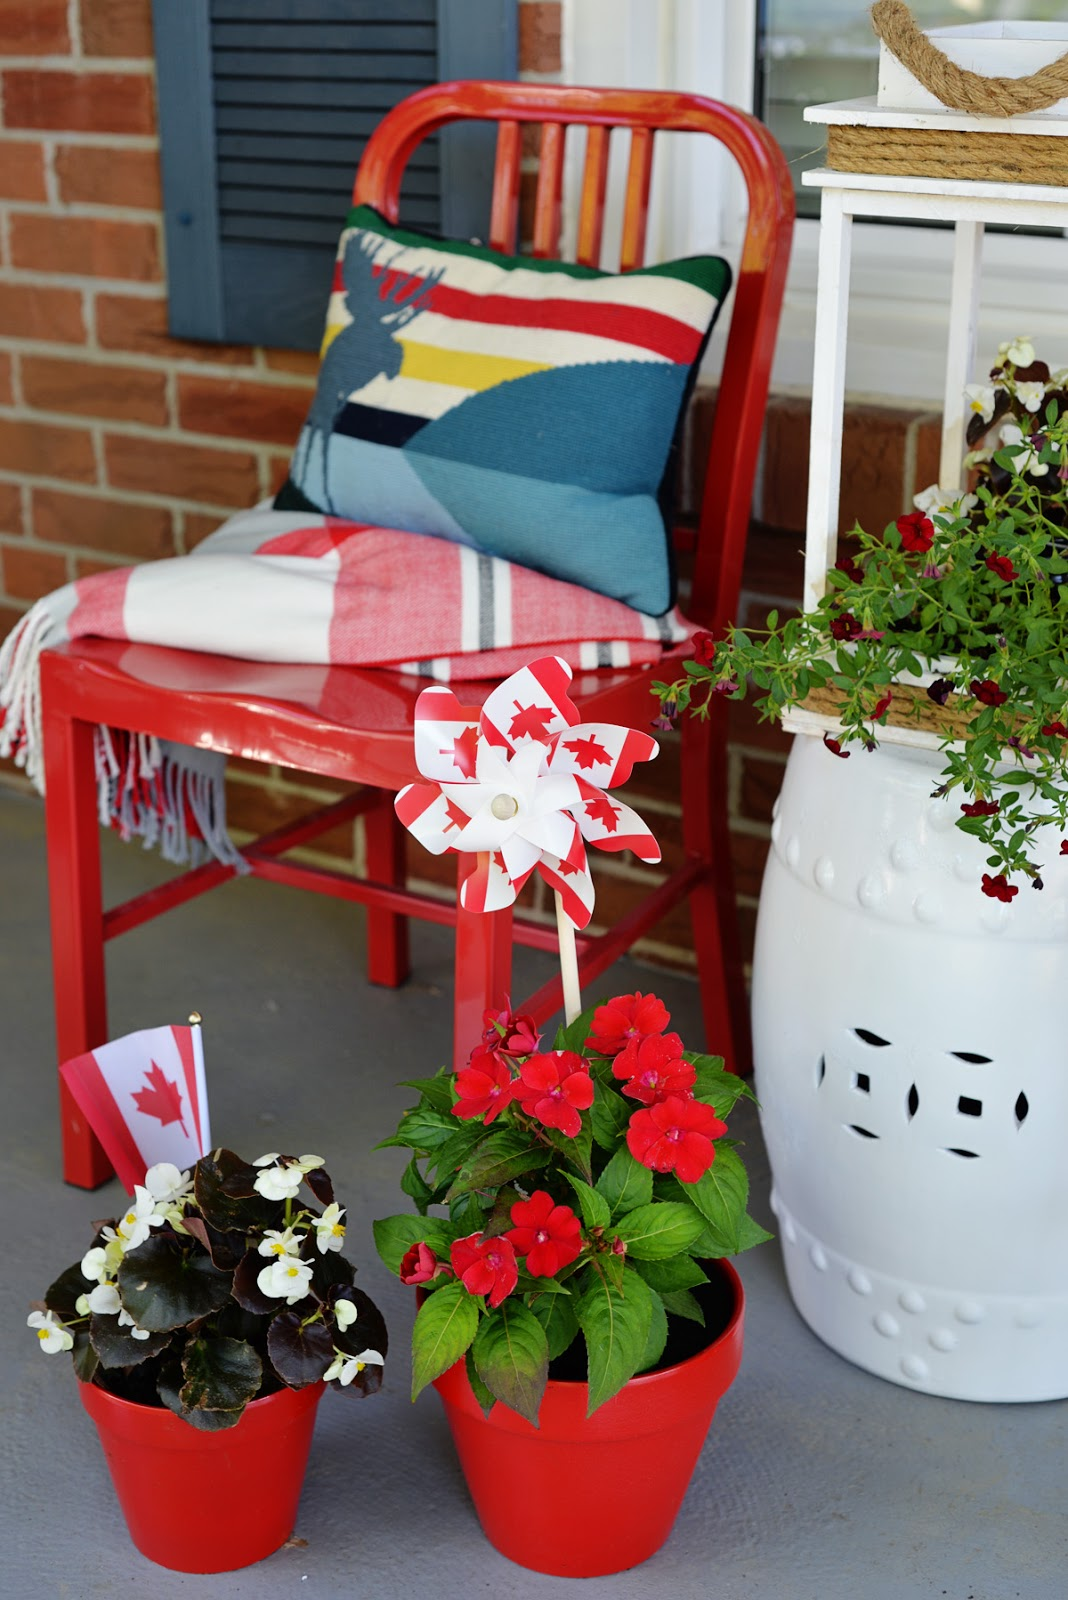 Canada Day red and white porch decorations | Ramblingrenovators.ca